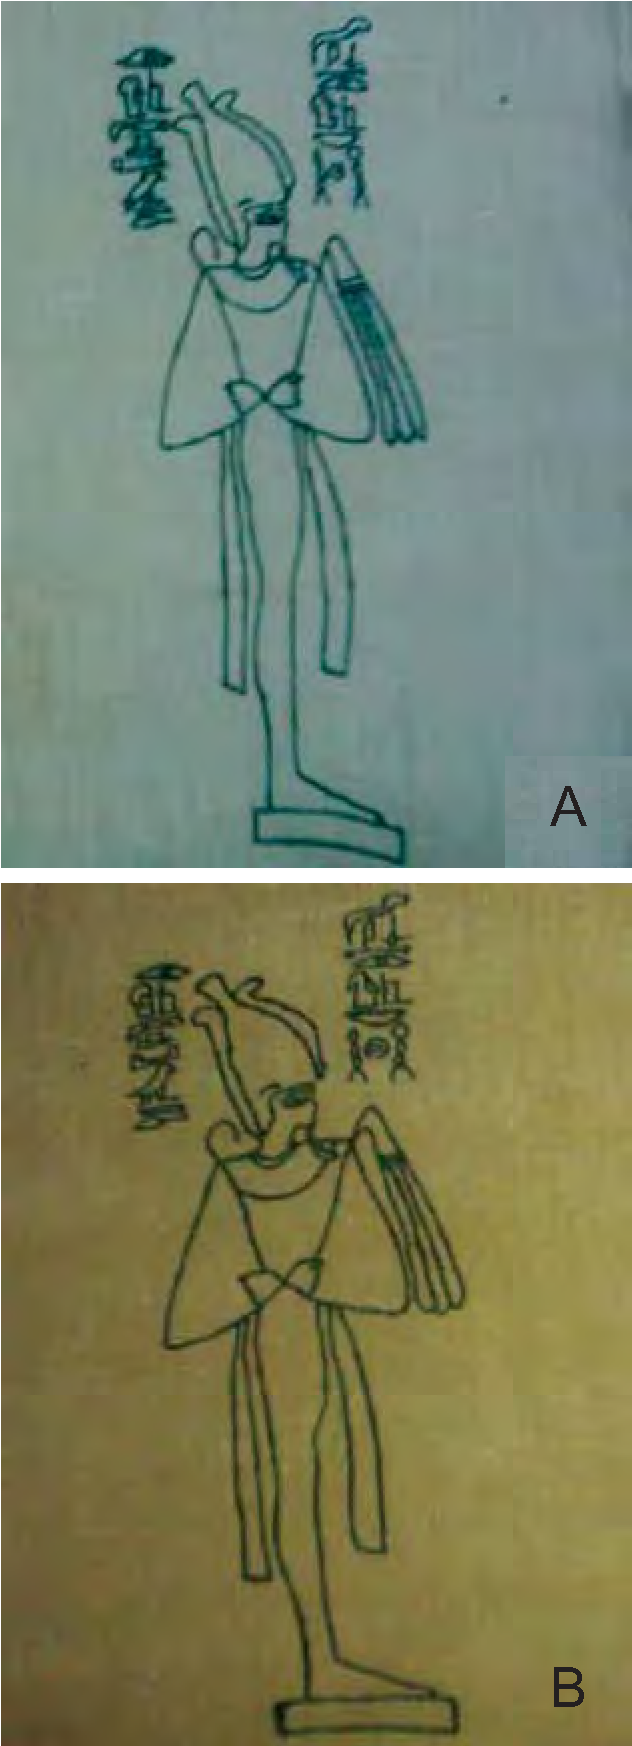 PDF] CONSERVATION OF A RARE PAINTED ANCIENT EGYPTIAN TEXTILE